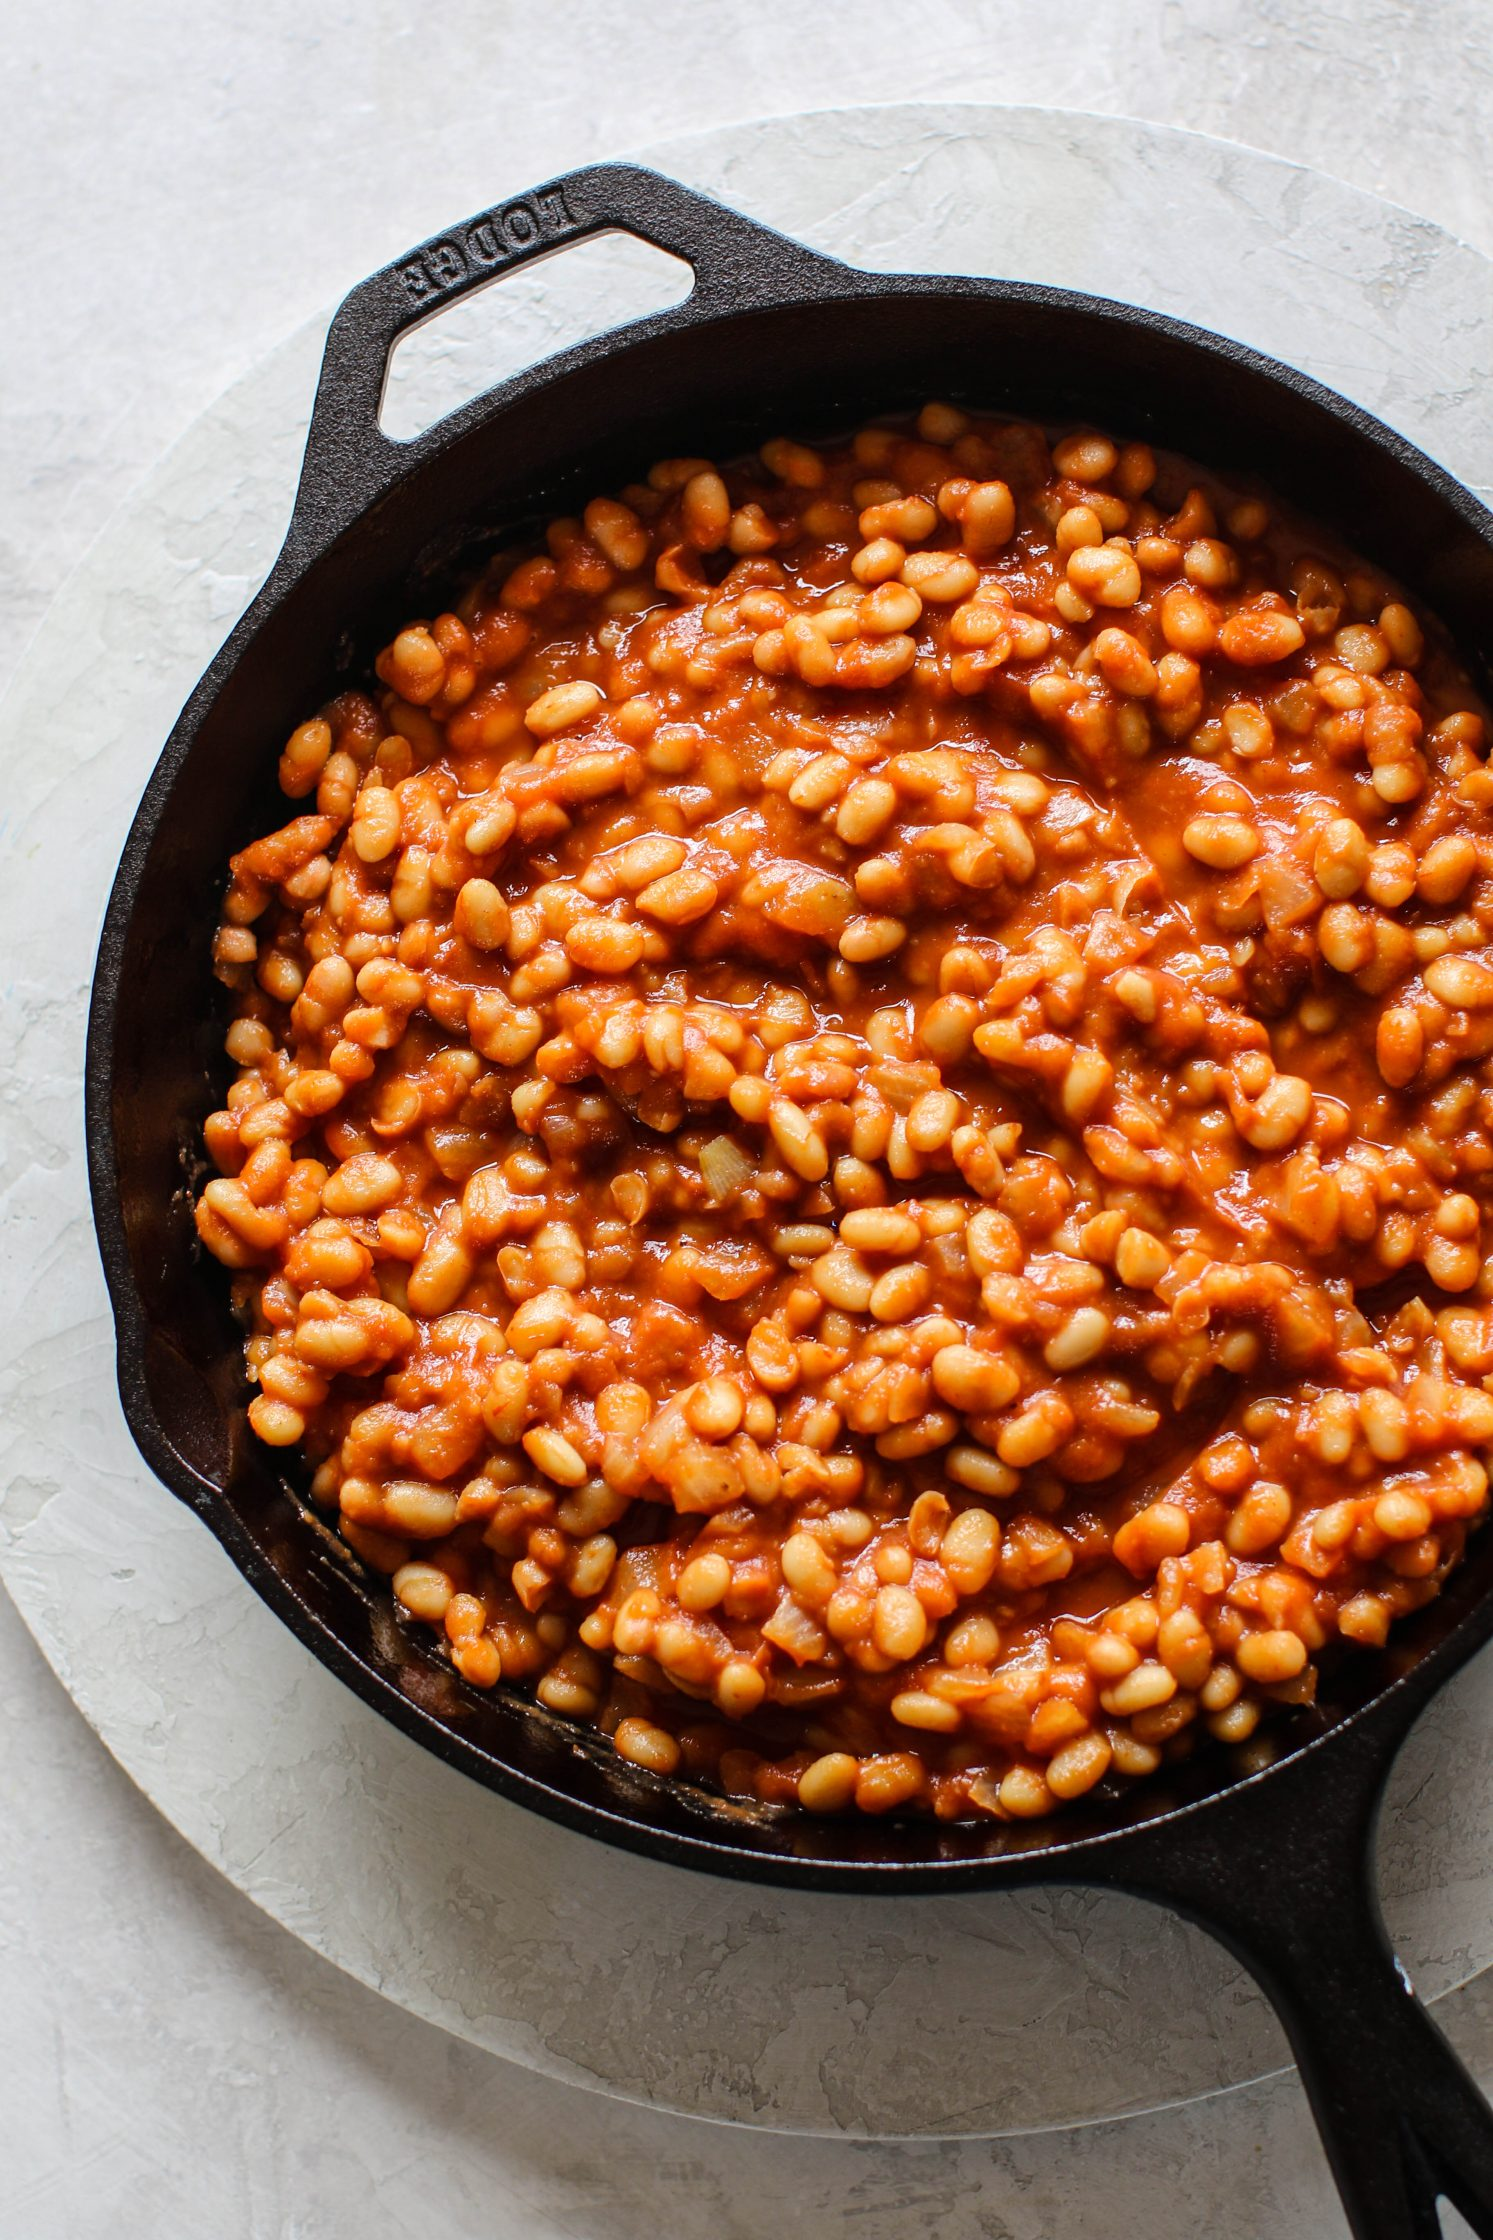 Vegan Maple Baked Beans in skillet